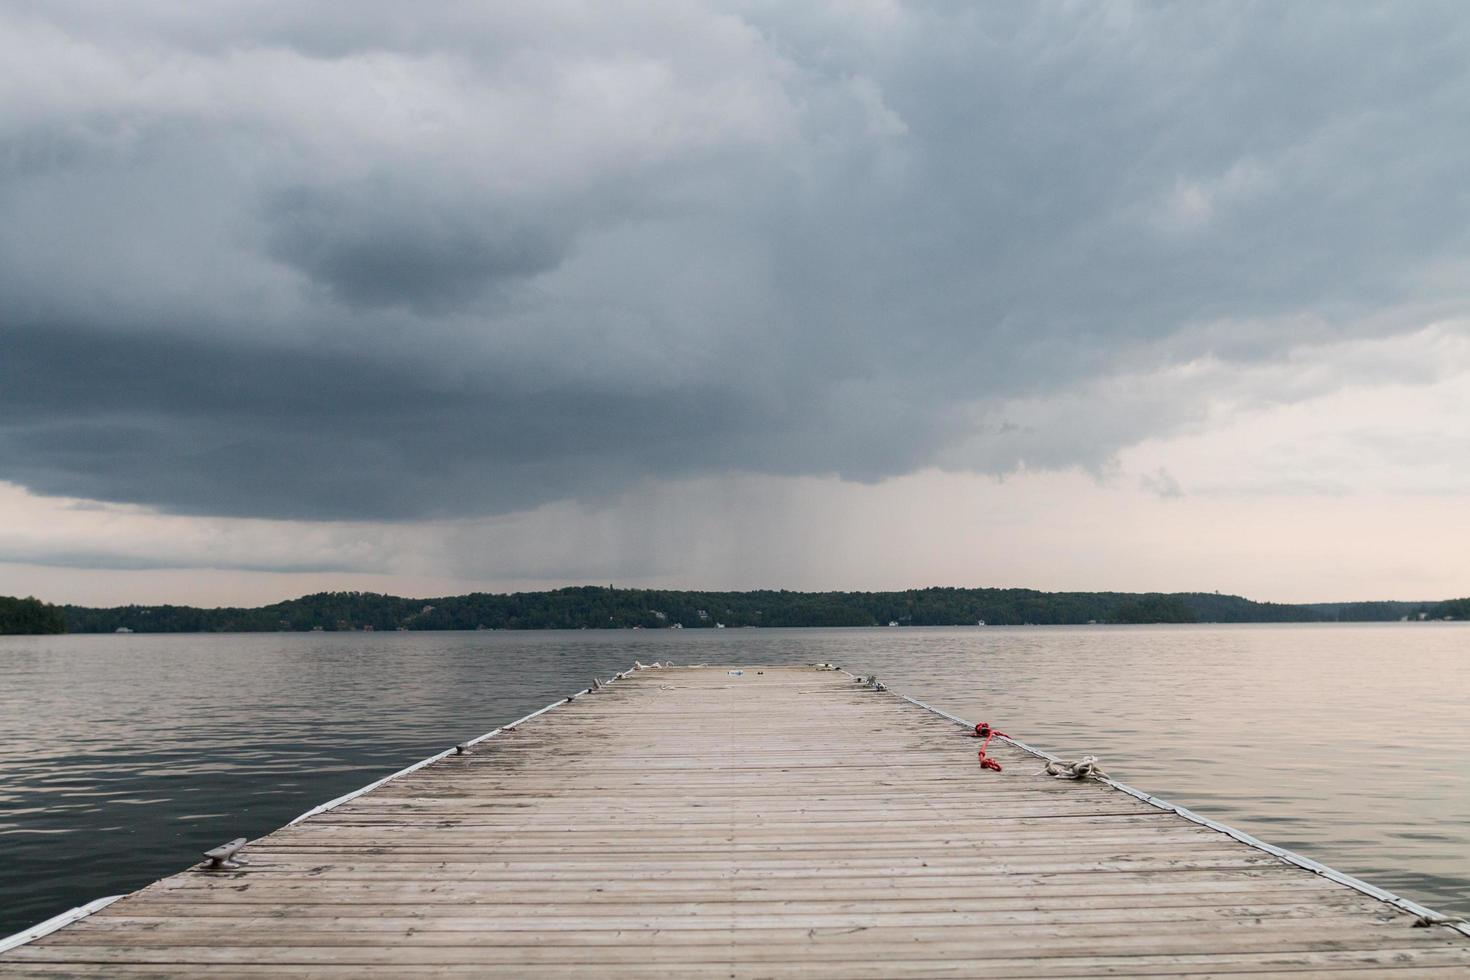 Wooden dock on body of water under cloudy sky photo